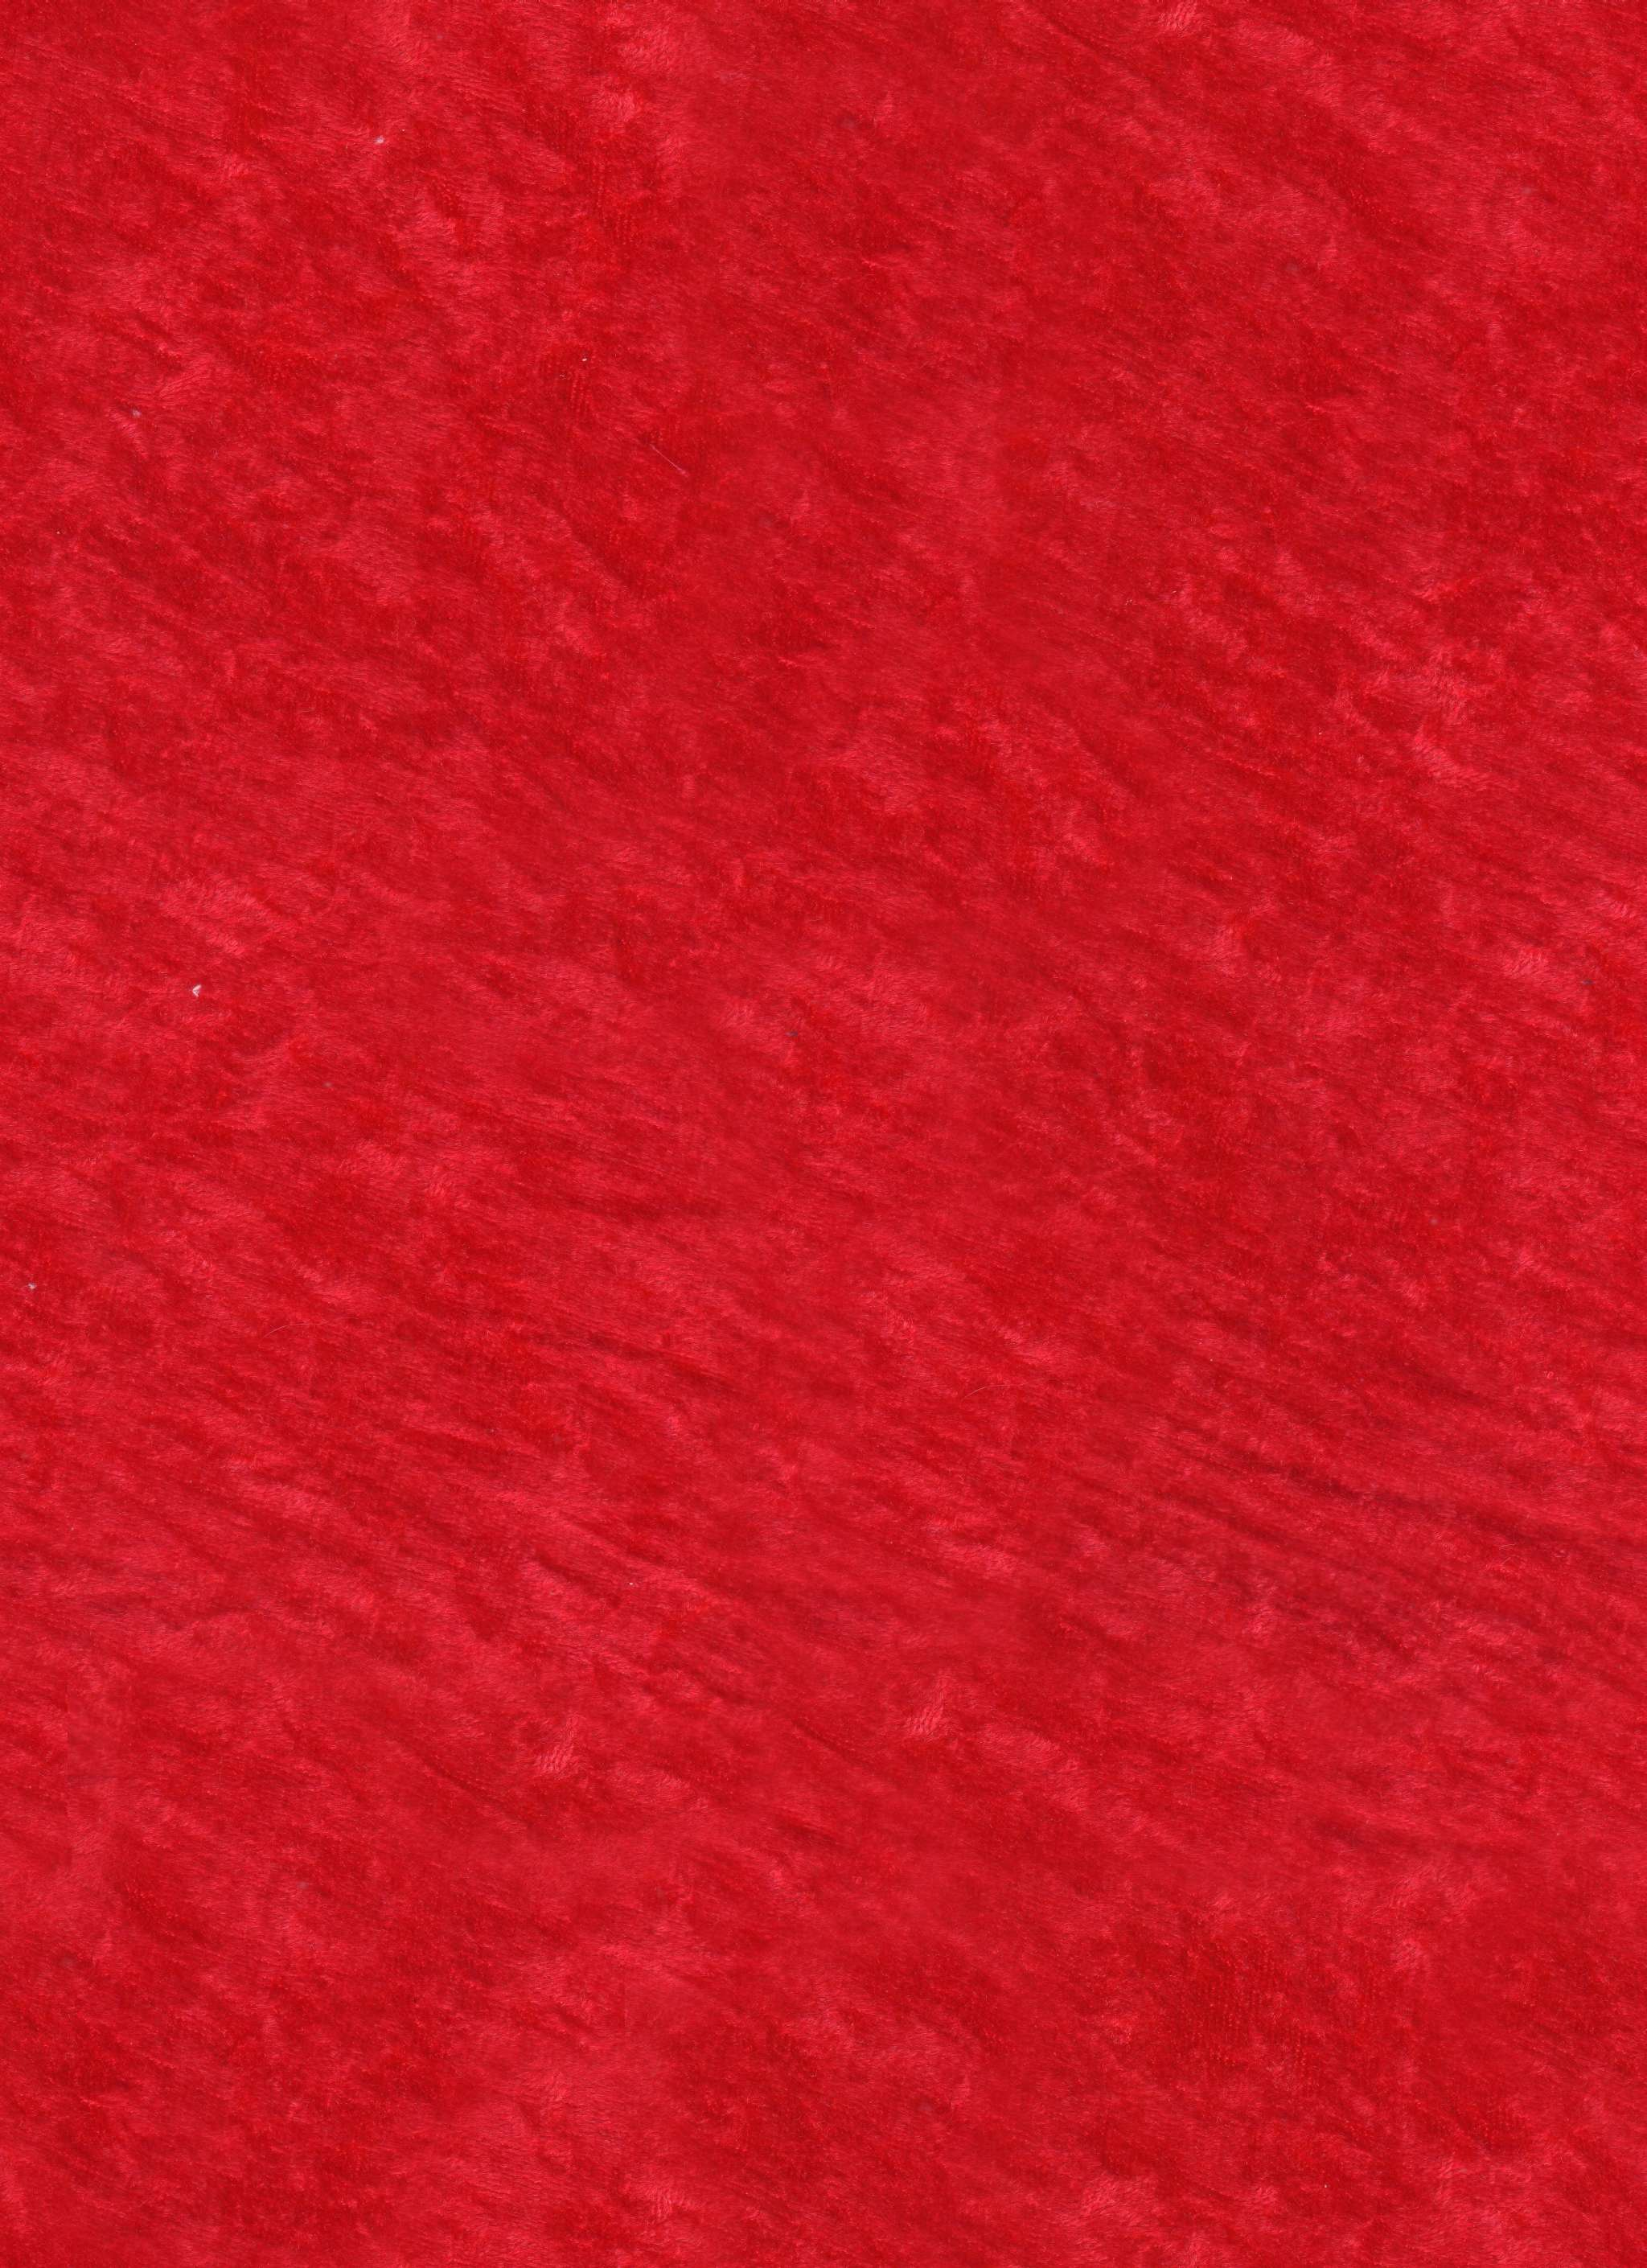 3d Wallpaper Pack Free Download Fabric Velvet Red Seamless Texture With Normalmap